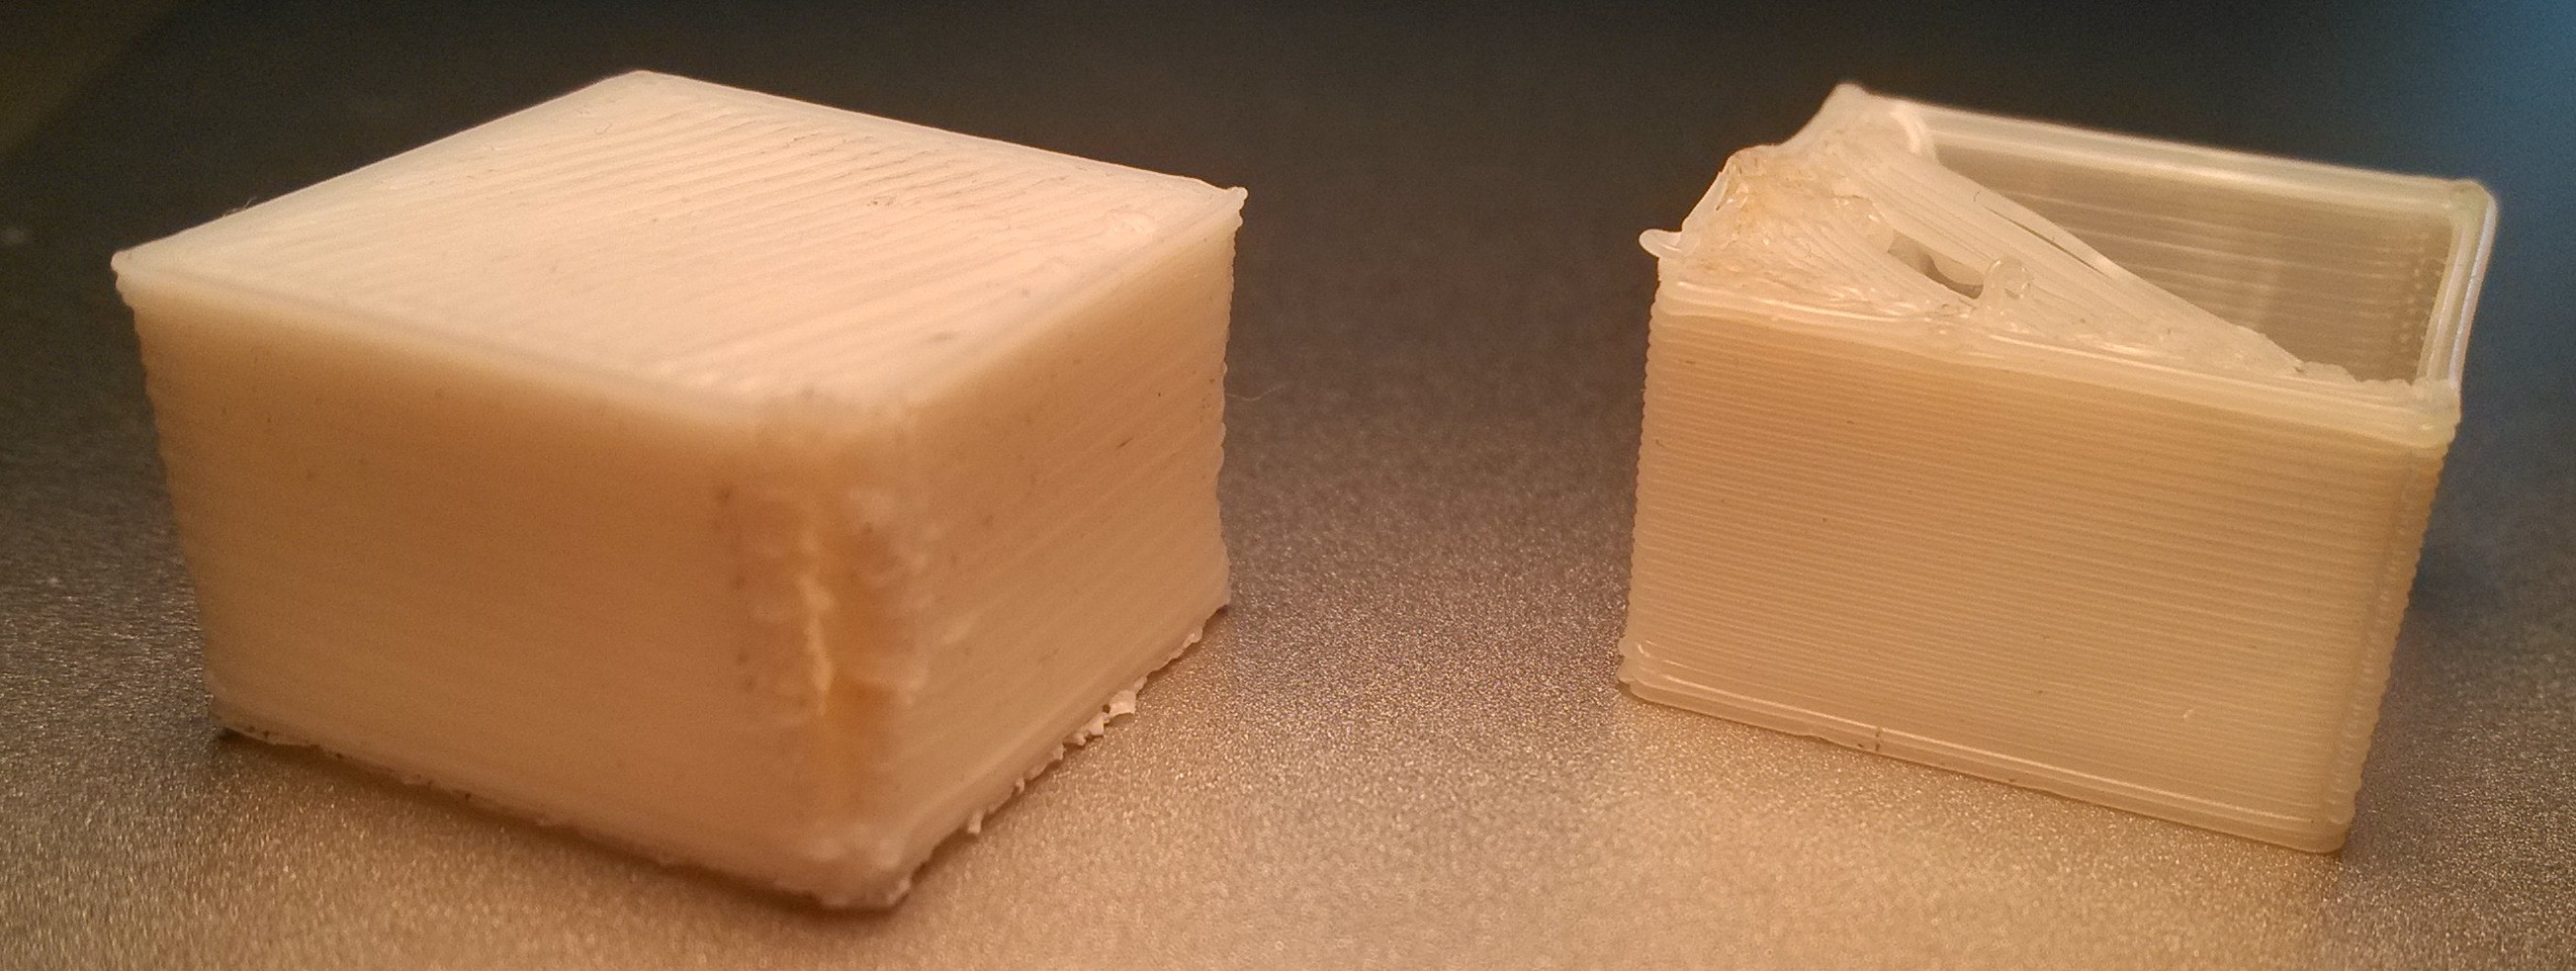 Comparison of calibrated and not calibrated printout